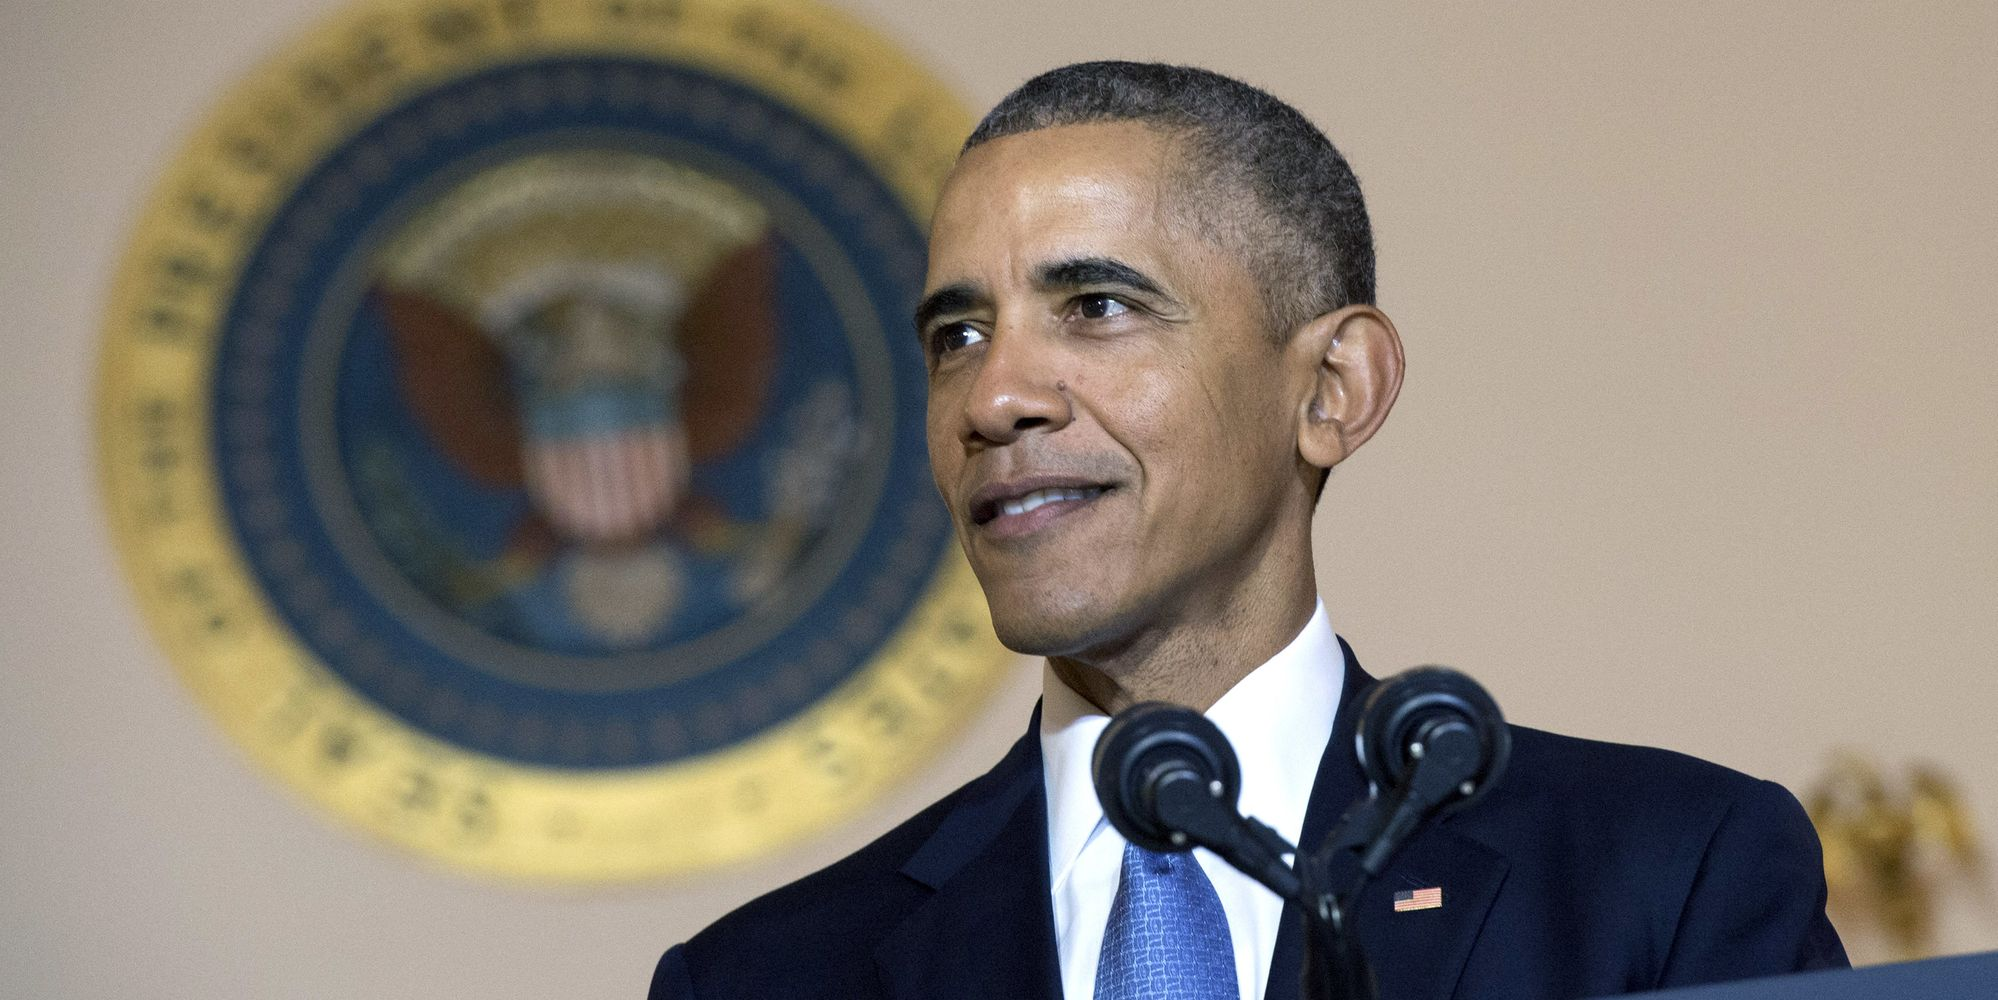 Obama Makes Big Move For Transgender Rights In Health Care